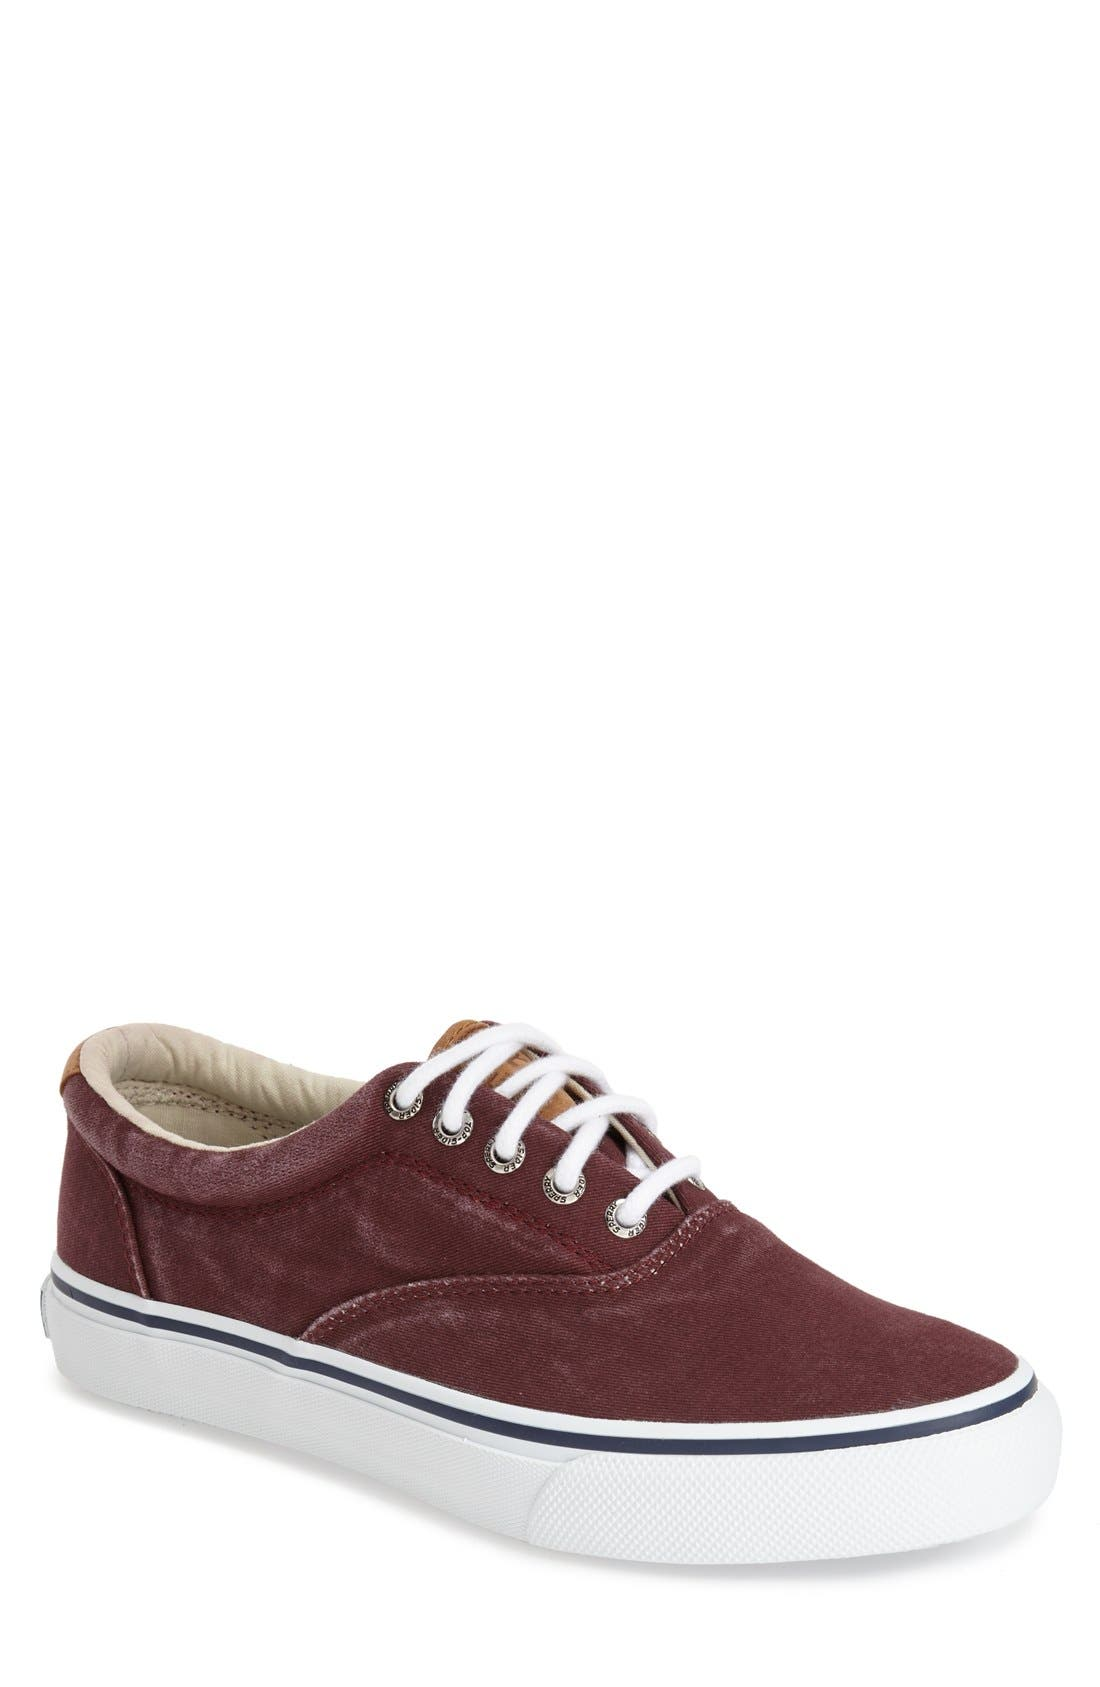 Alternate Image 1 Selected - Sperry 'Striper CVO' Sneaker (Men)